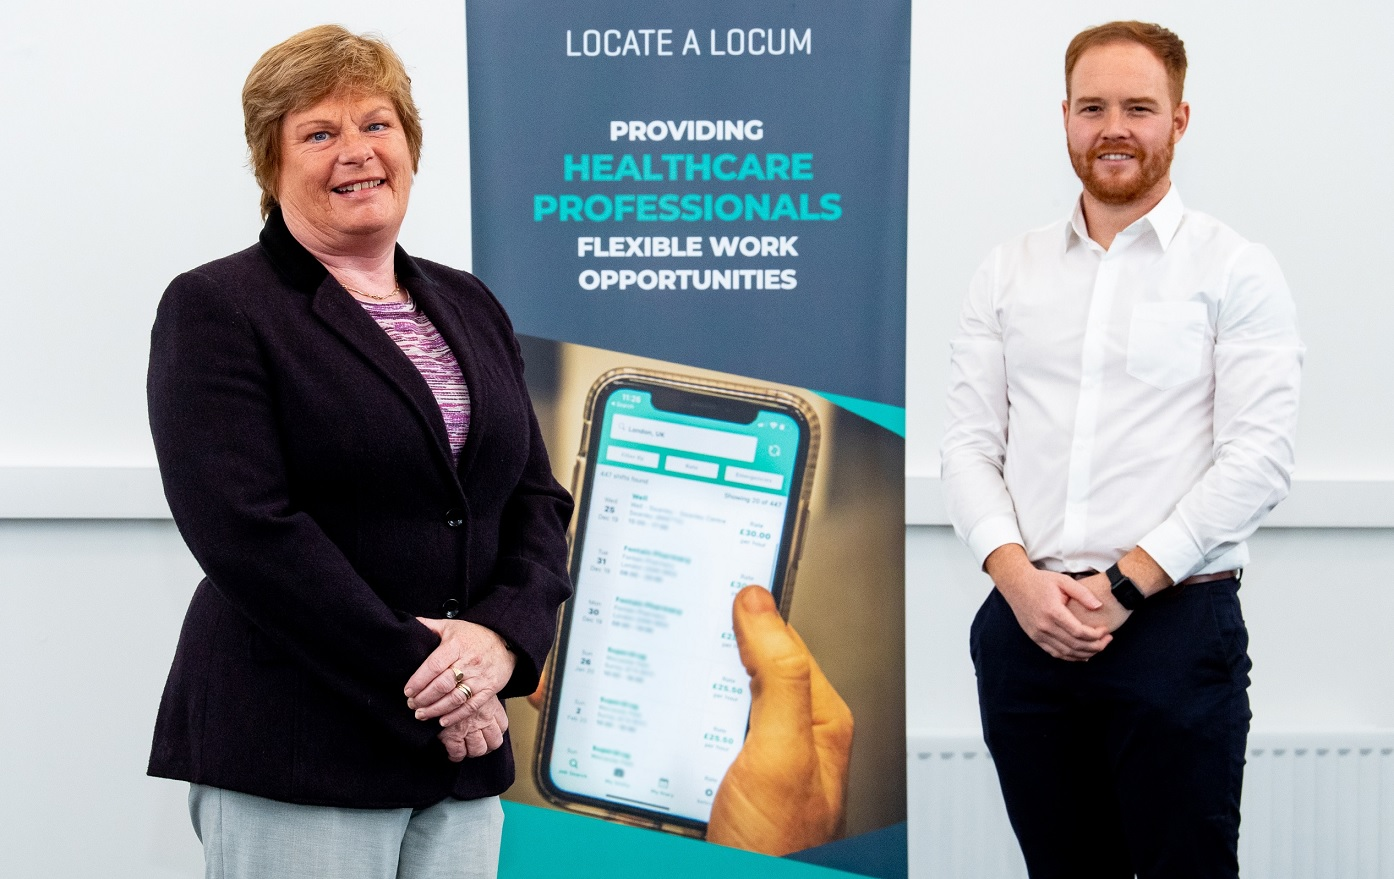 Belfast software firm Locate a Locum invests over £1million in healthcare software - NI business news - Content Writer Northern Ireland - Freelance Belfast Copywriter, Tall Paul Marketing